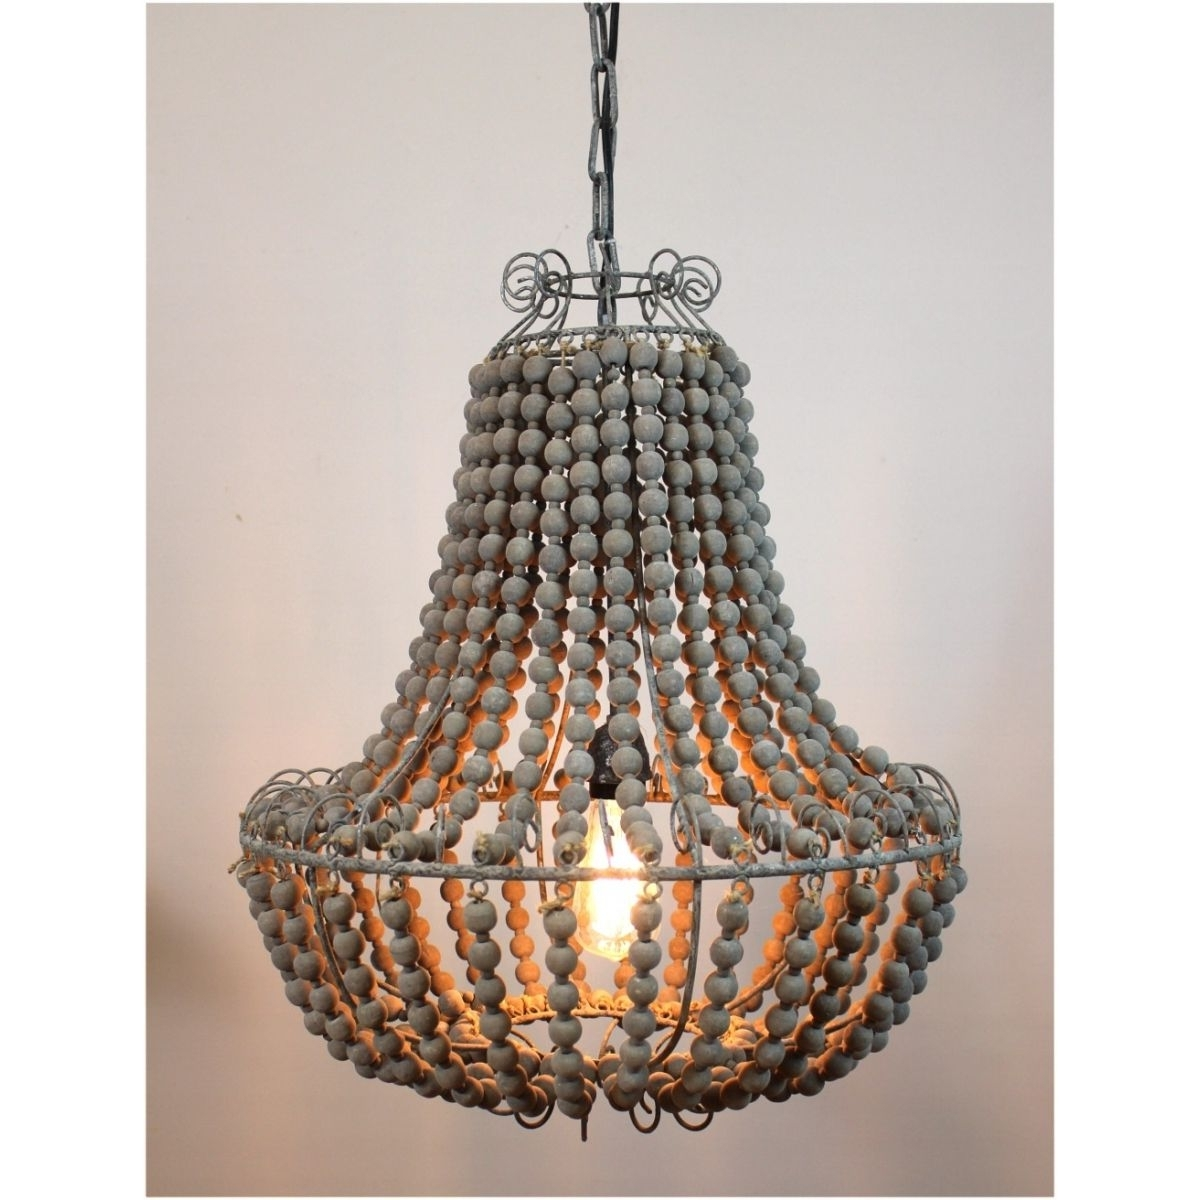 Famous Vintage Style Chandelier Throughout Aged Wooden Beaded Big Chandelier Hand Made Lighting Fixture Ceiling (View 20 of 20)